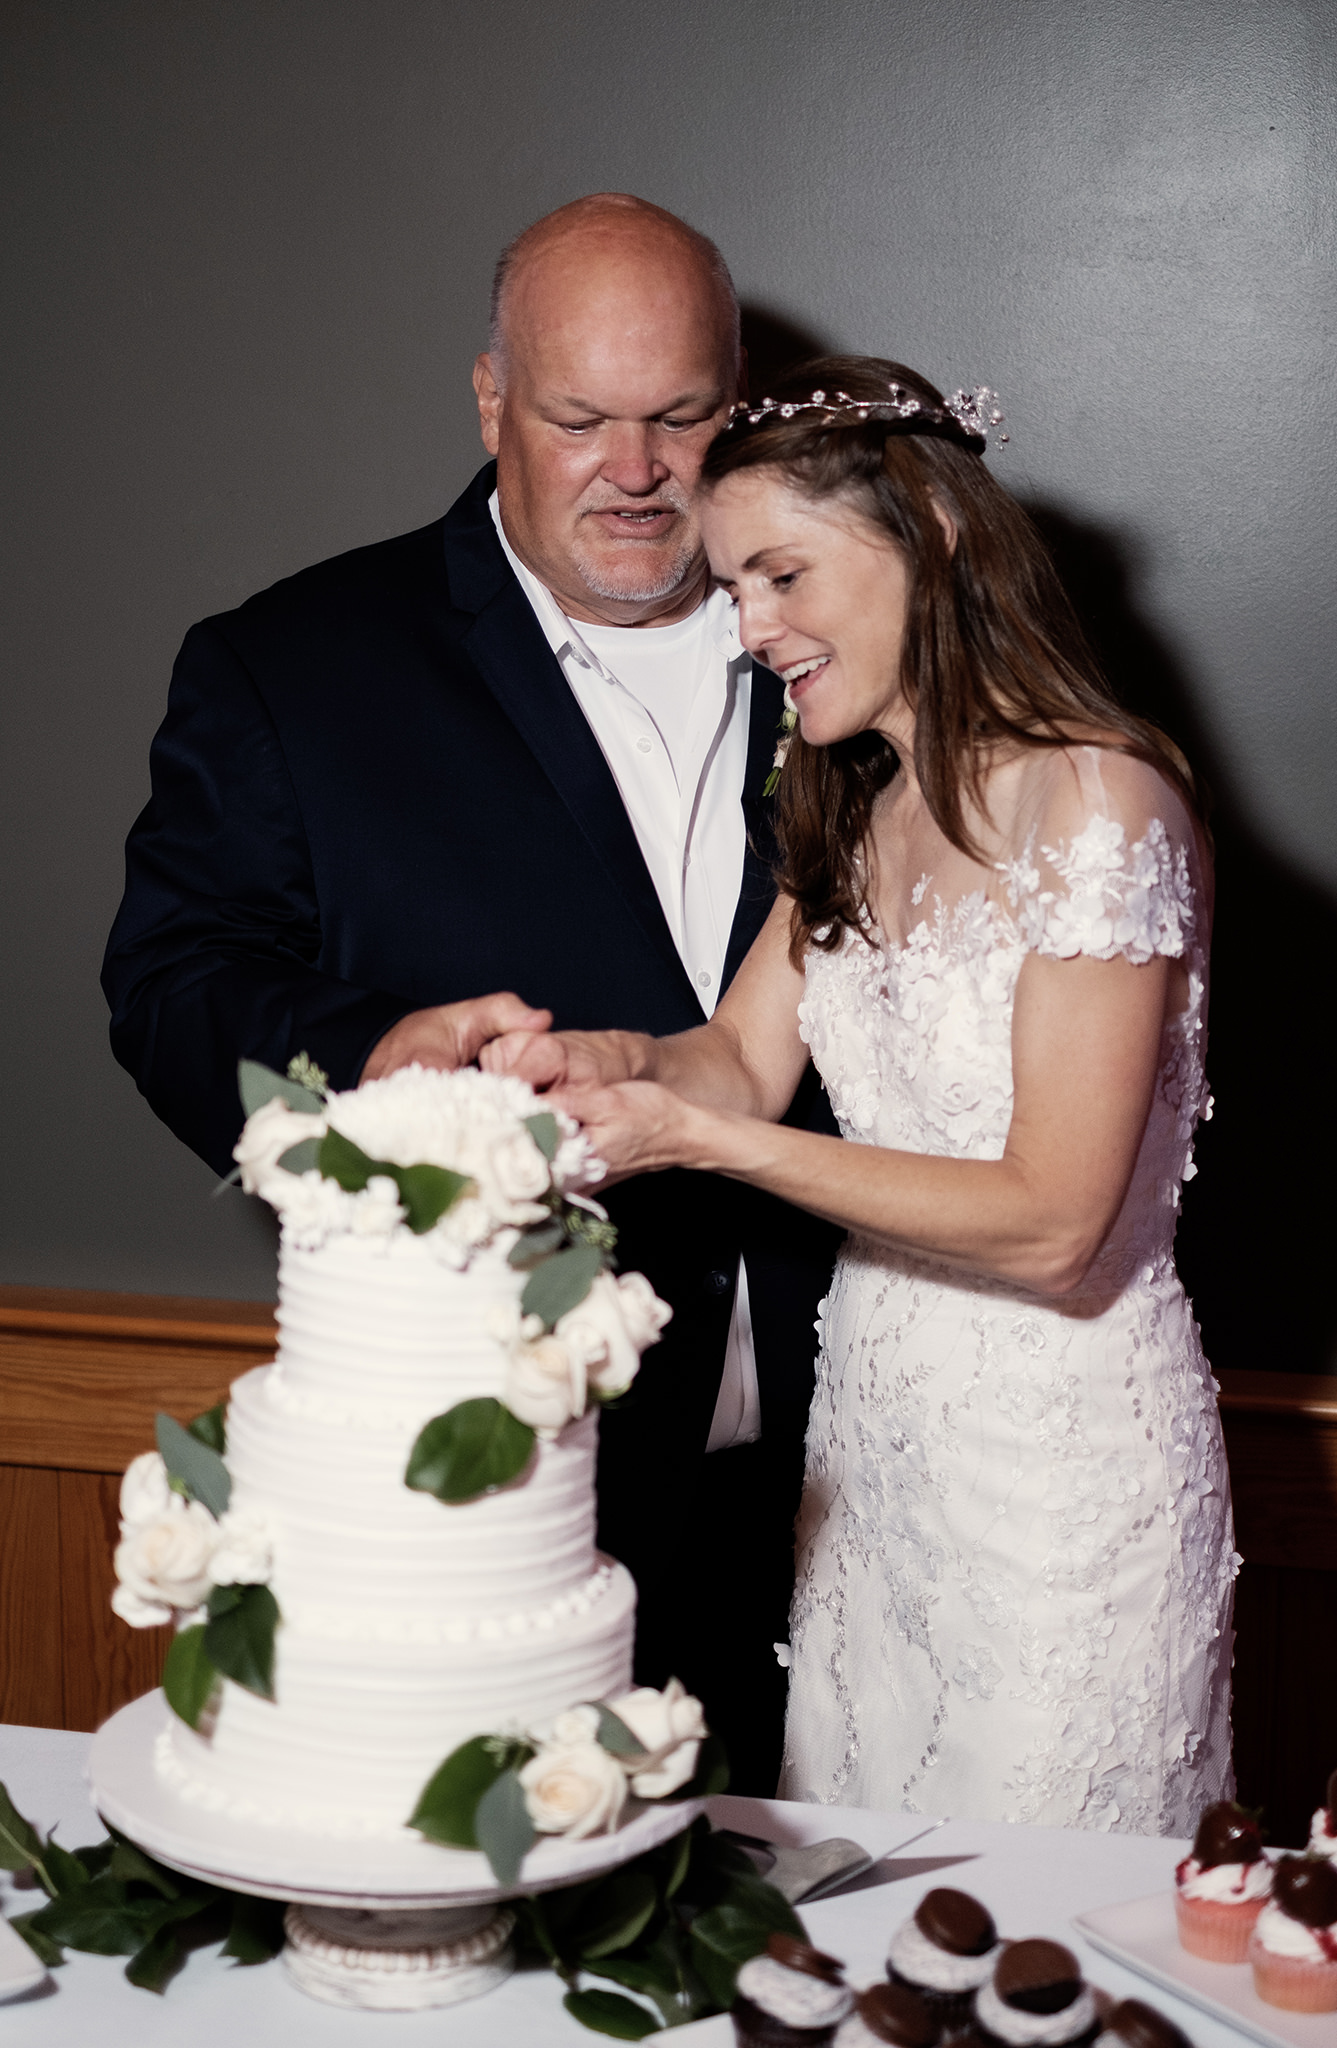 arkansasweddingphotographer27.JPG